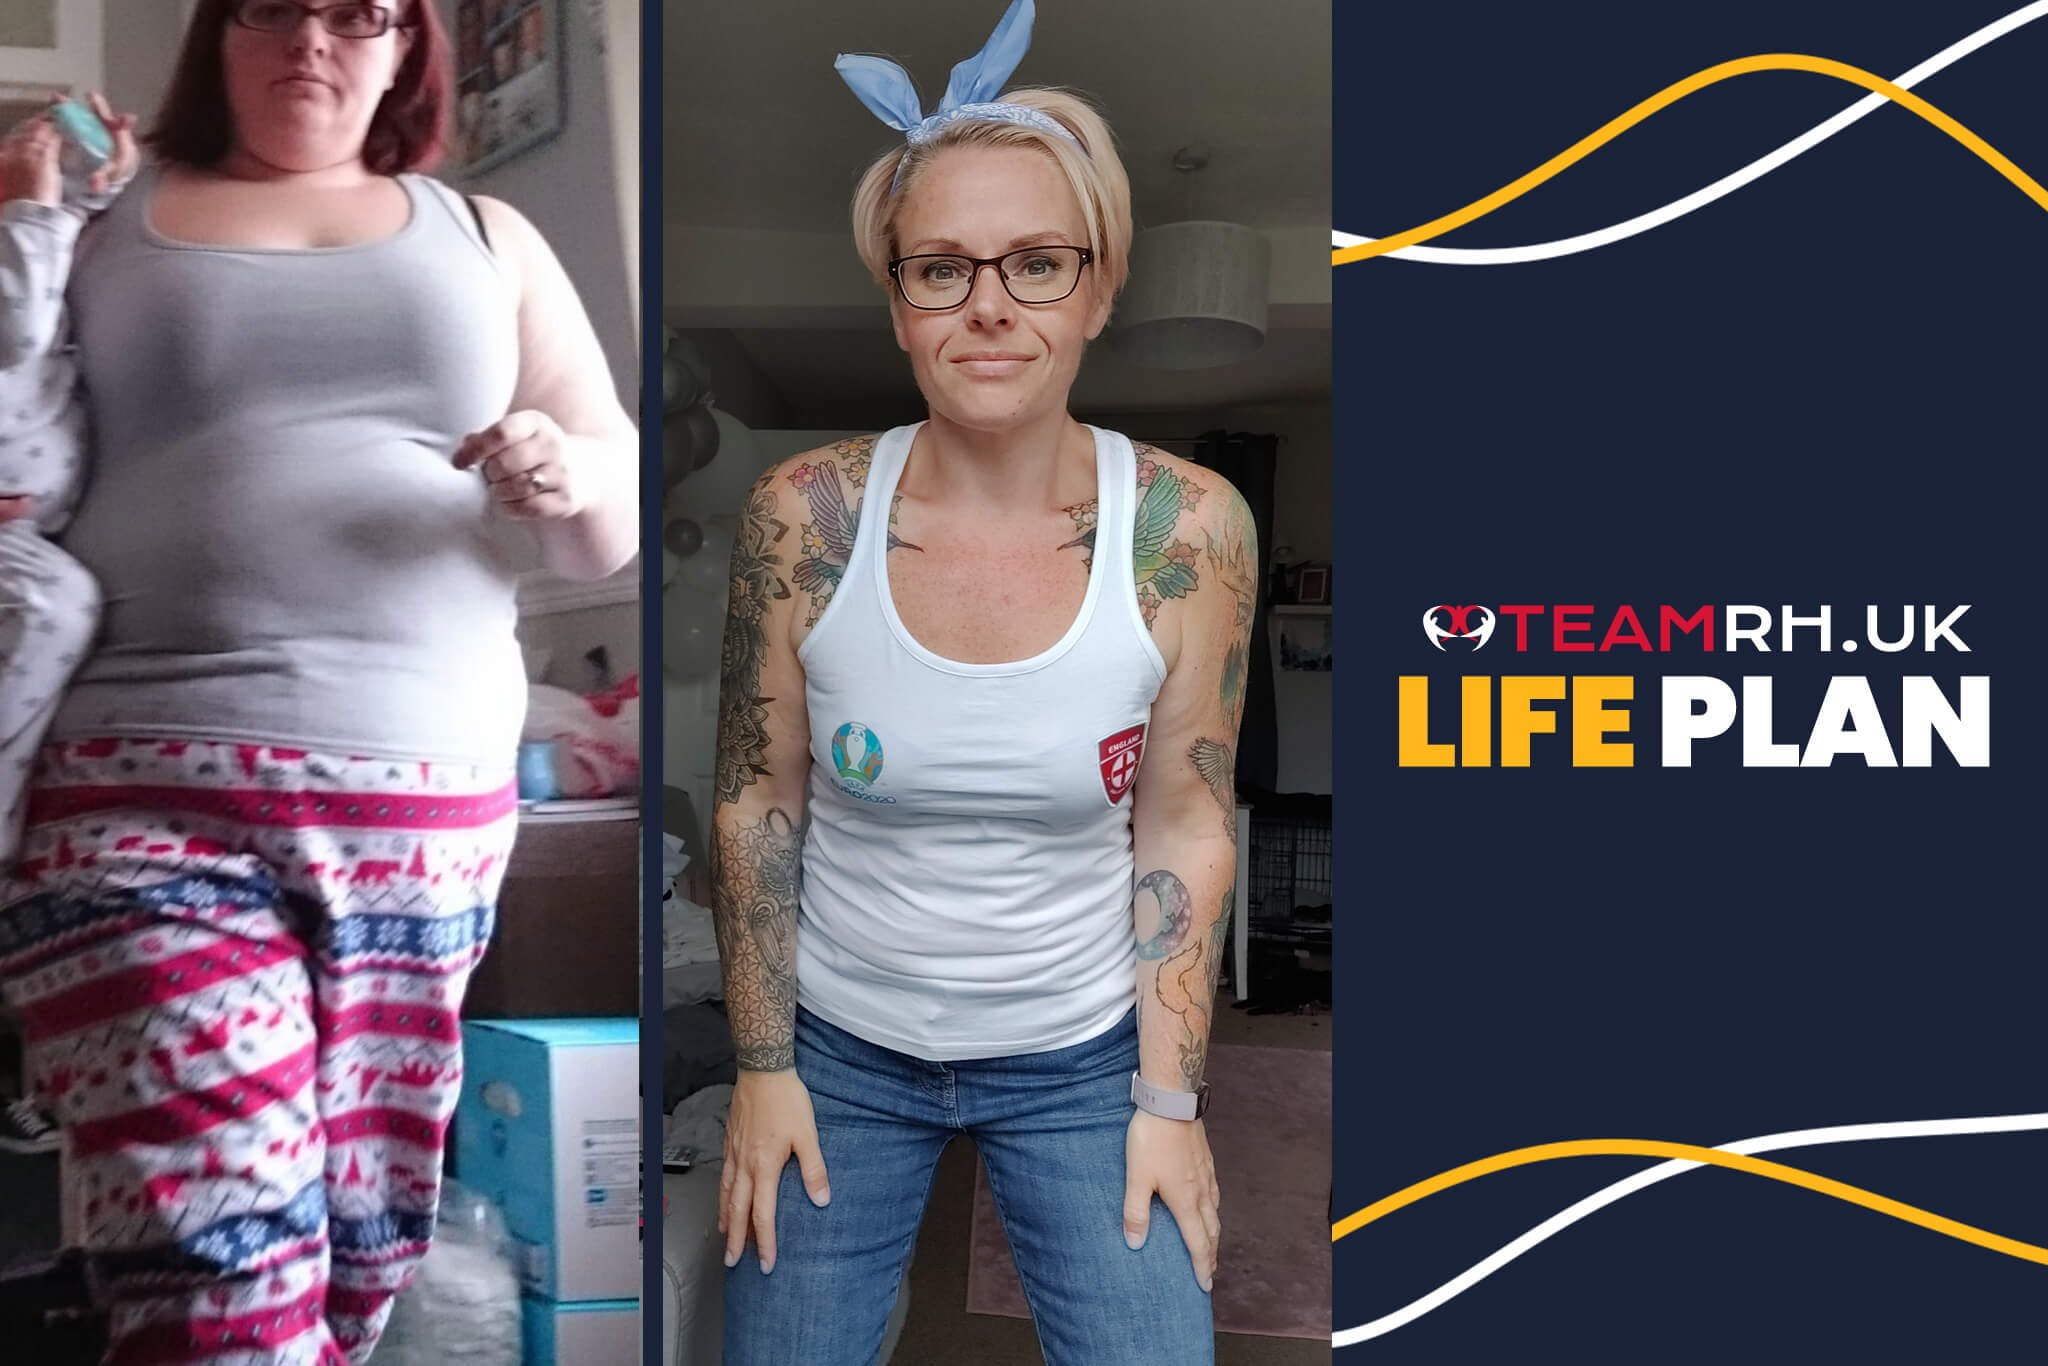 Stacey lost 100lbs and completely changed her life